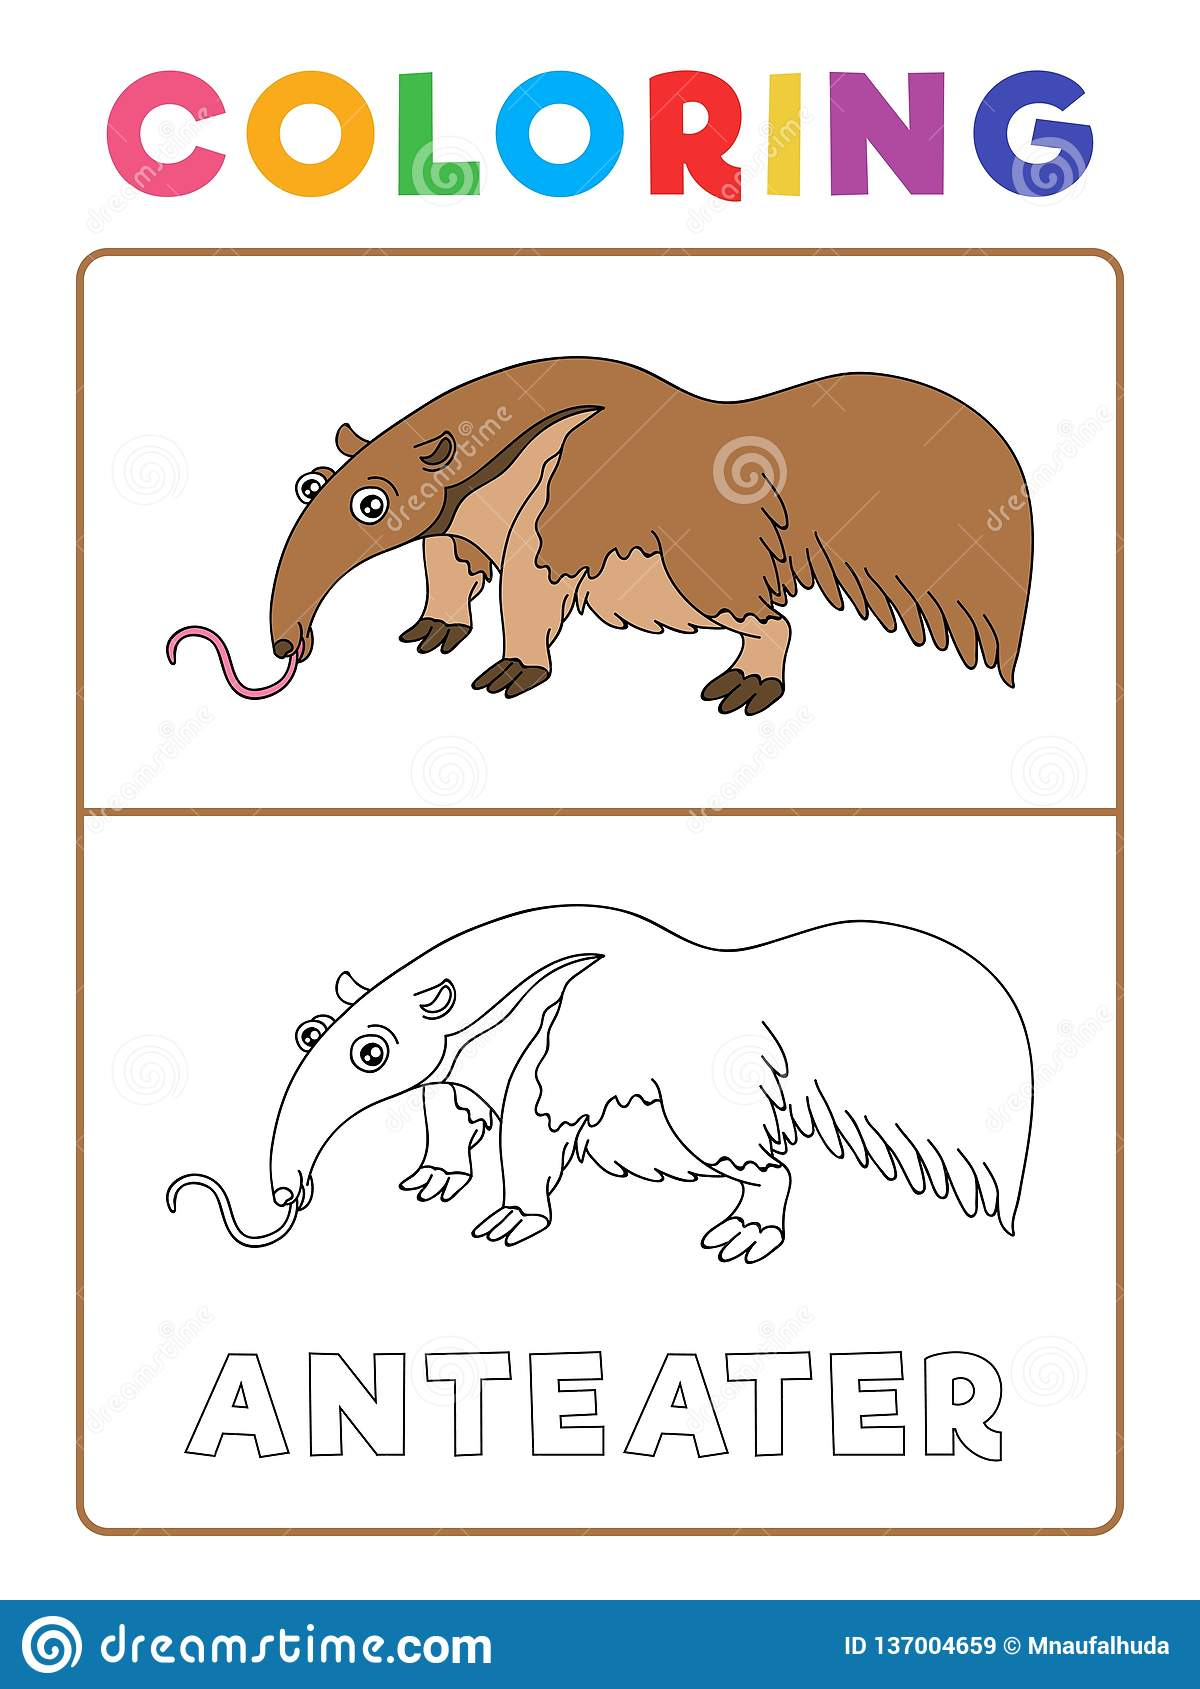 Funny Anteater Animal Coloring Book With Example